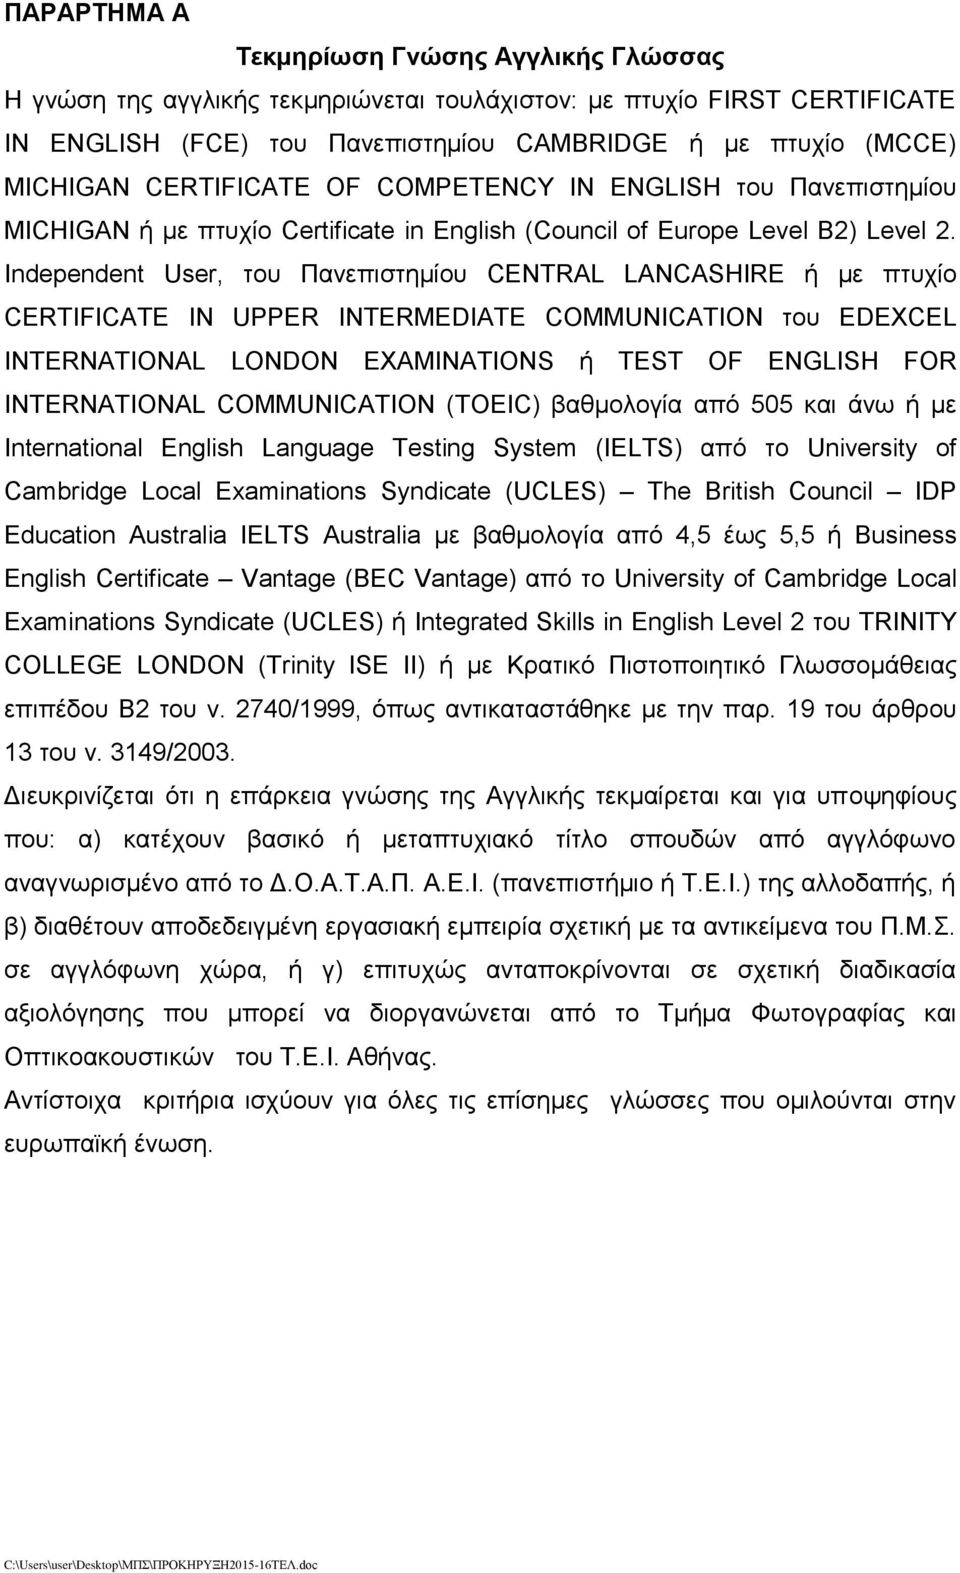 Independent User, του Πανεπιστημίου CENTRAL LANCASHIRE ή με πτυχίο CERTIFICATE IN UPPER INTERMEDIATE COMMUNICATION του EDEXCEL INTERNATIONAL LONDON EXAMINATIONS ή TEST OF ENGLISH FOR INTERNATIONAL